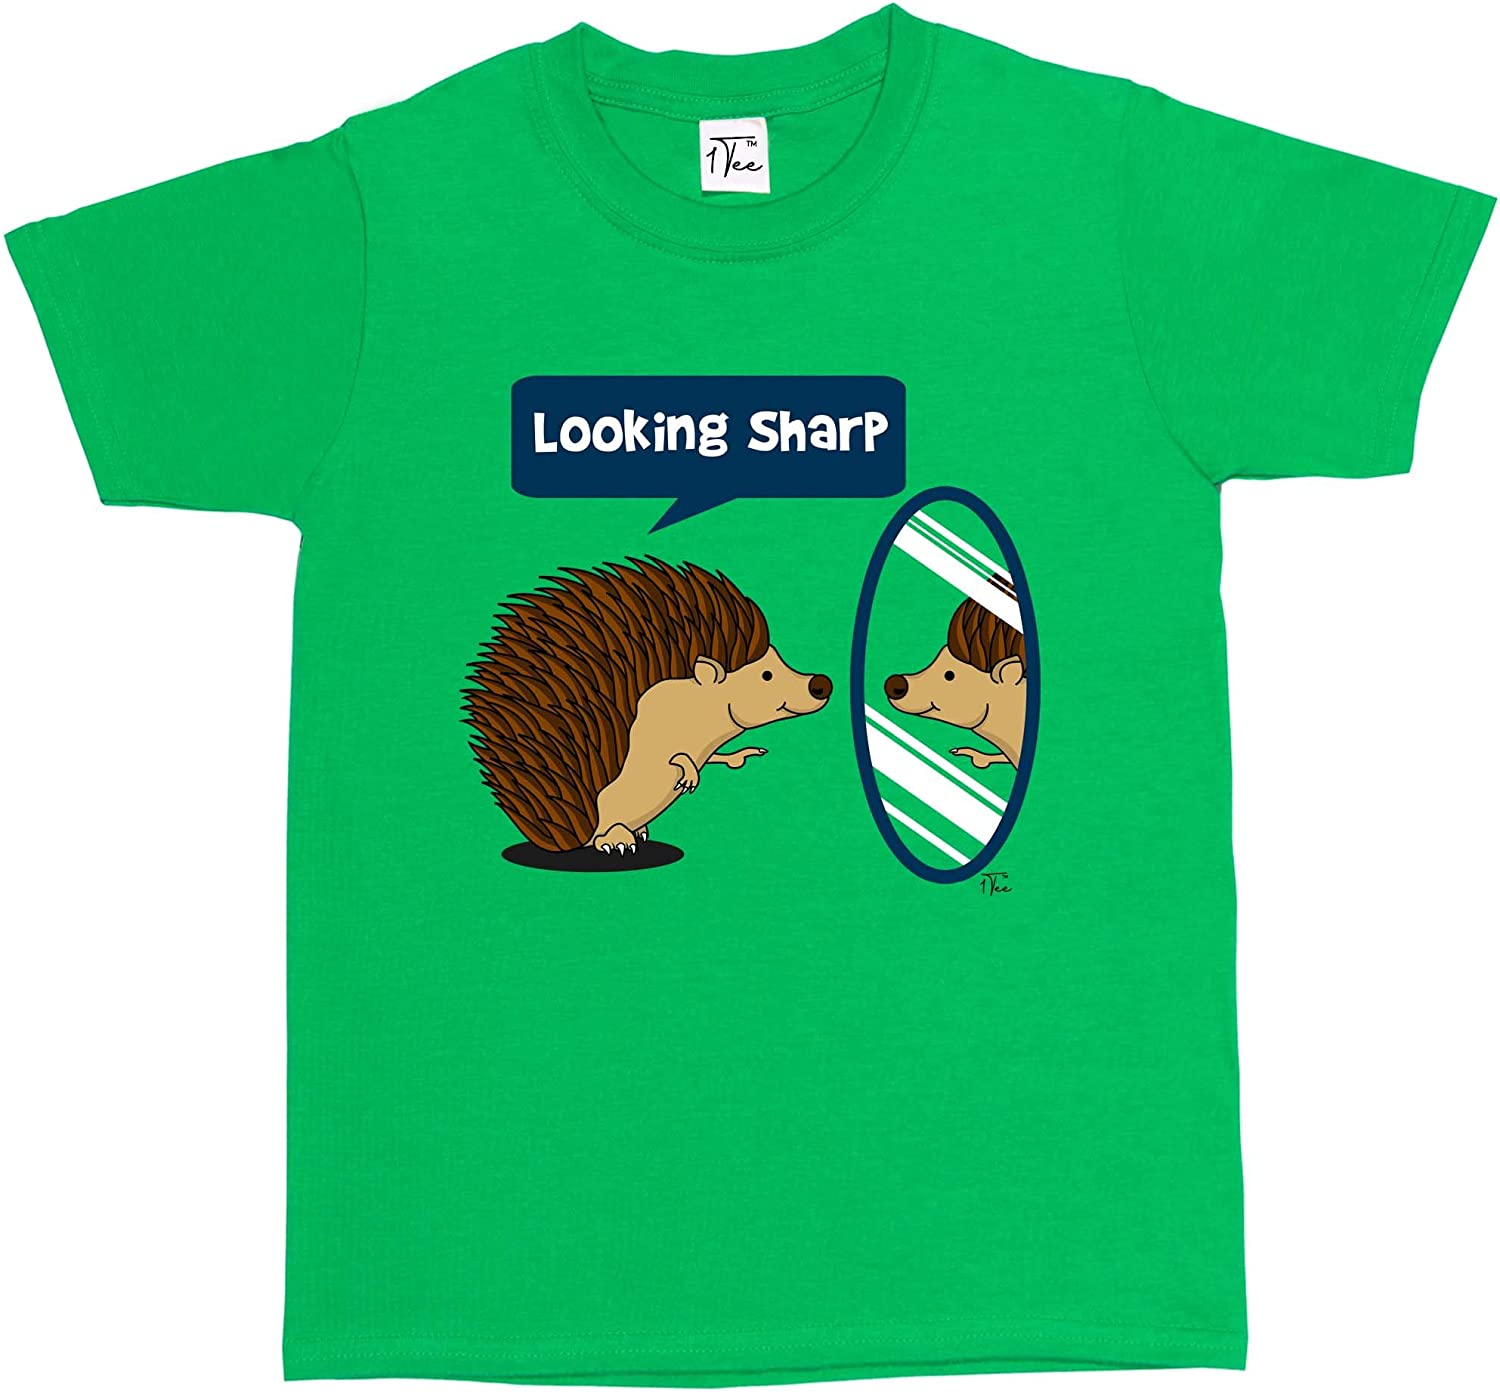 1Tee Girls Looking Sharp Hedgehog T-Shirt